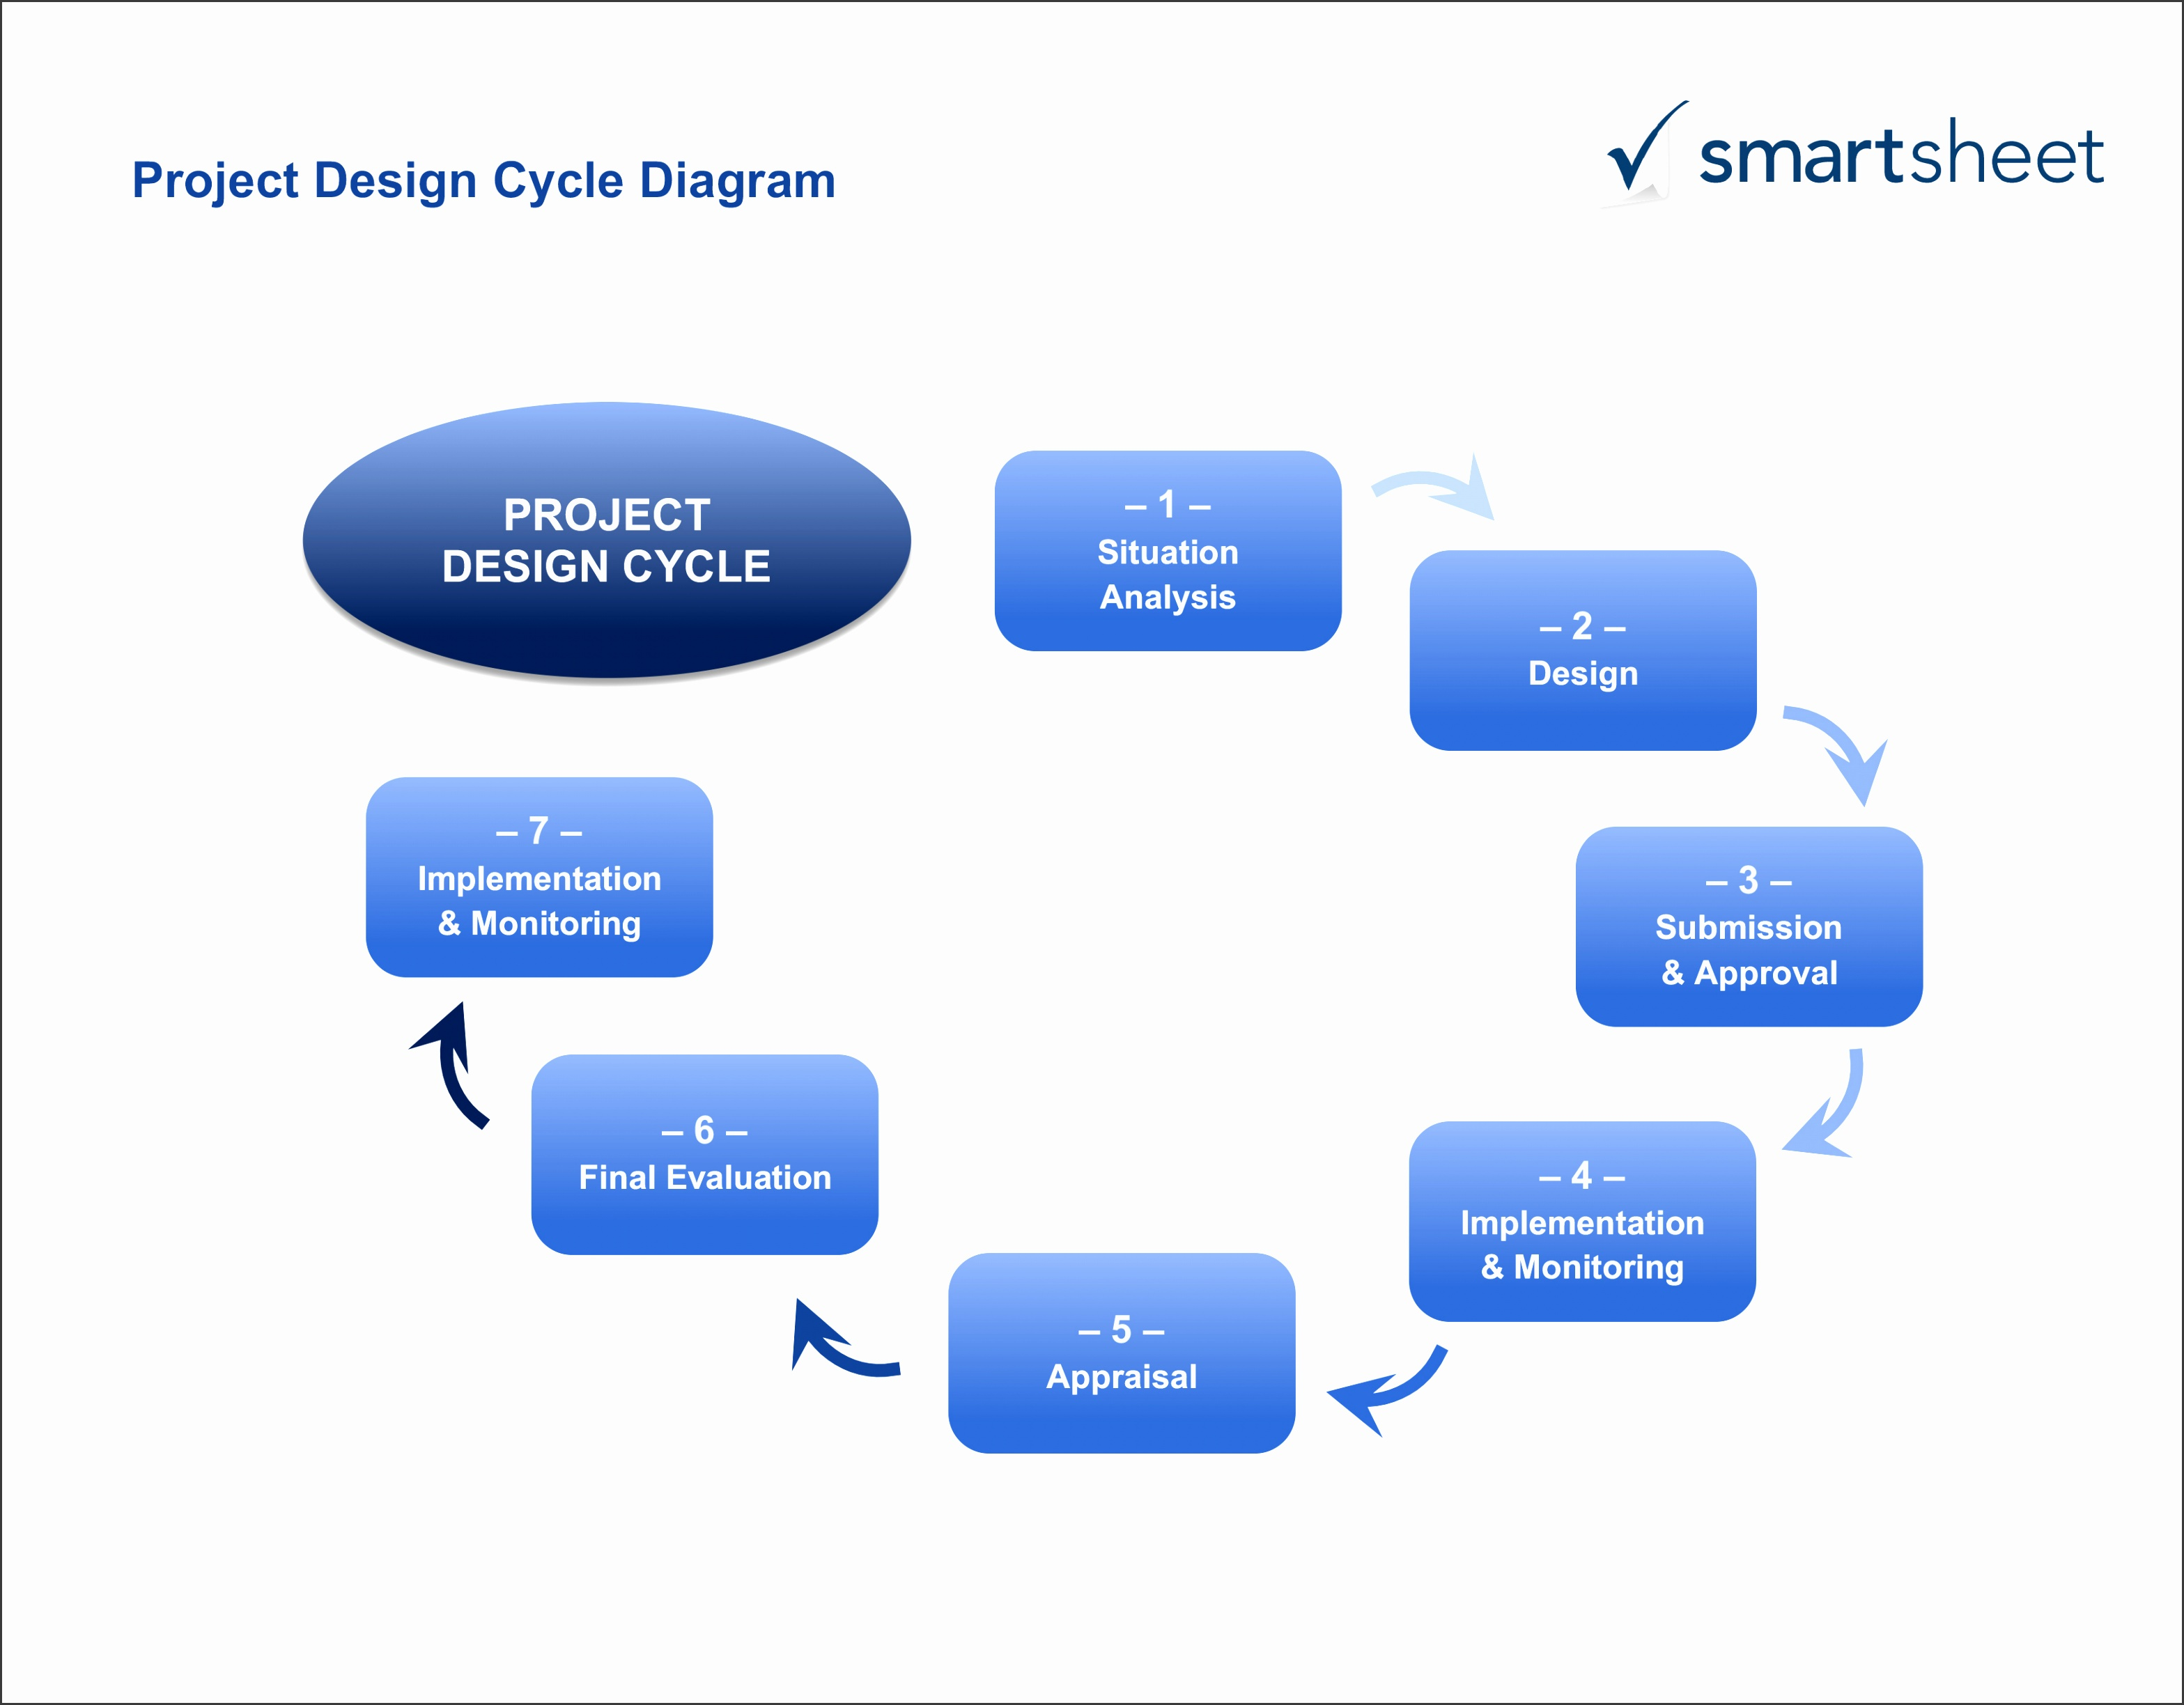 IC ProjectDesignCycleDiagram Word · Download Project Design Cycle Diagram Template